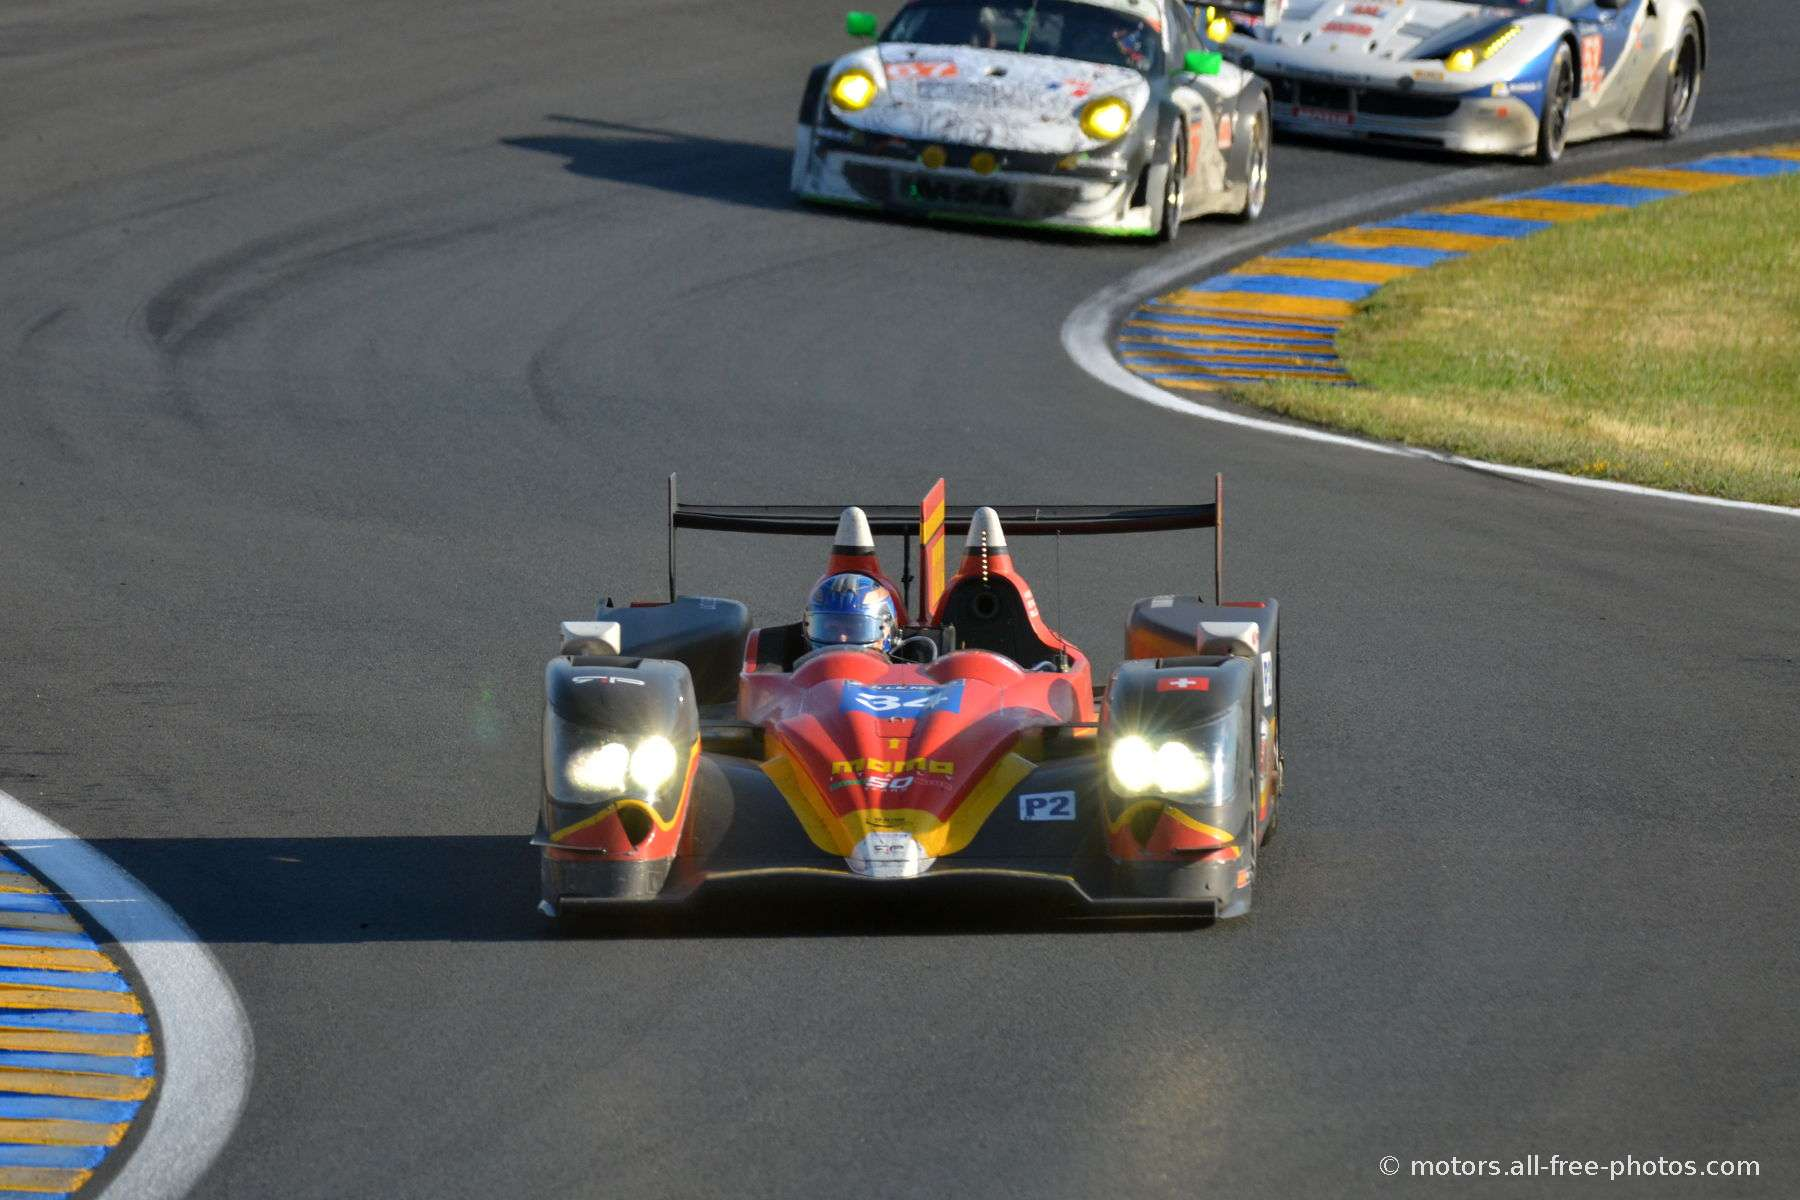 Oreca 03R-Judd - Team Race Performance